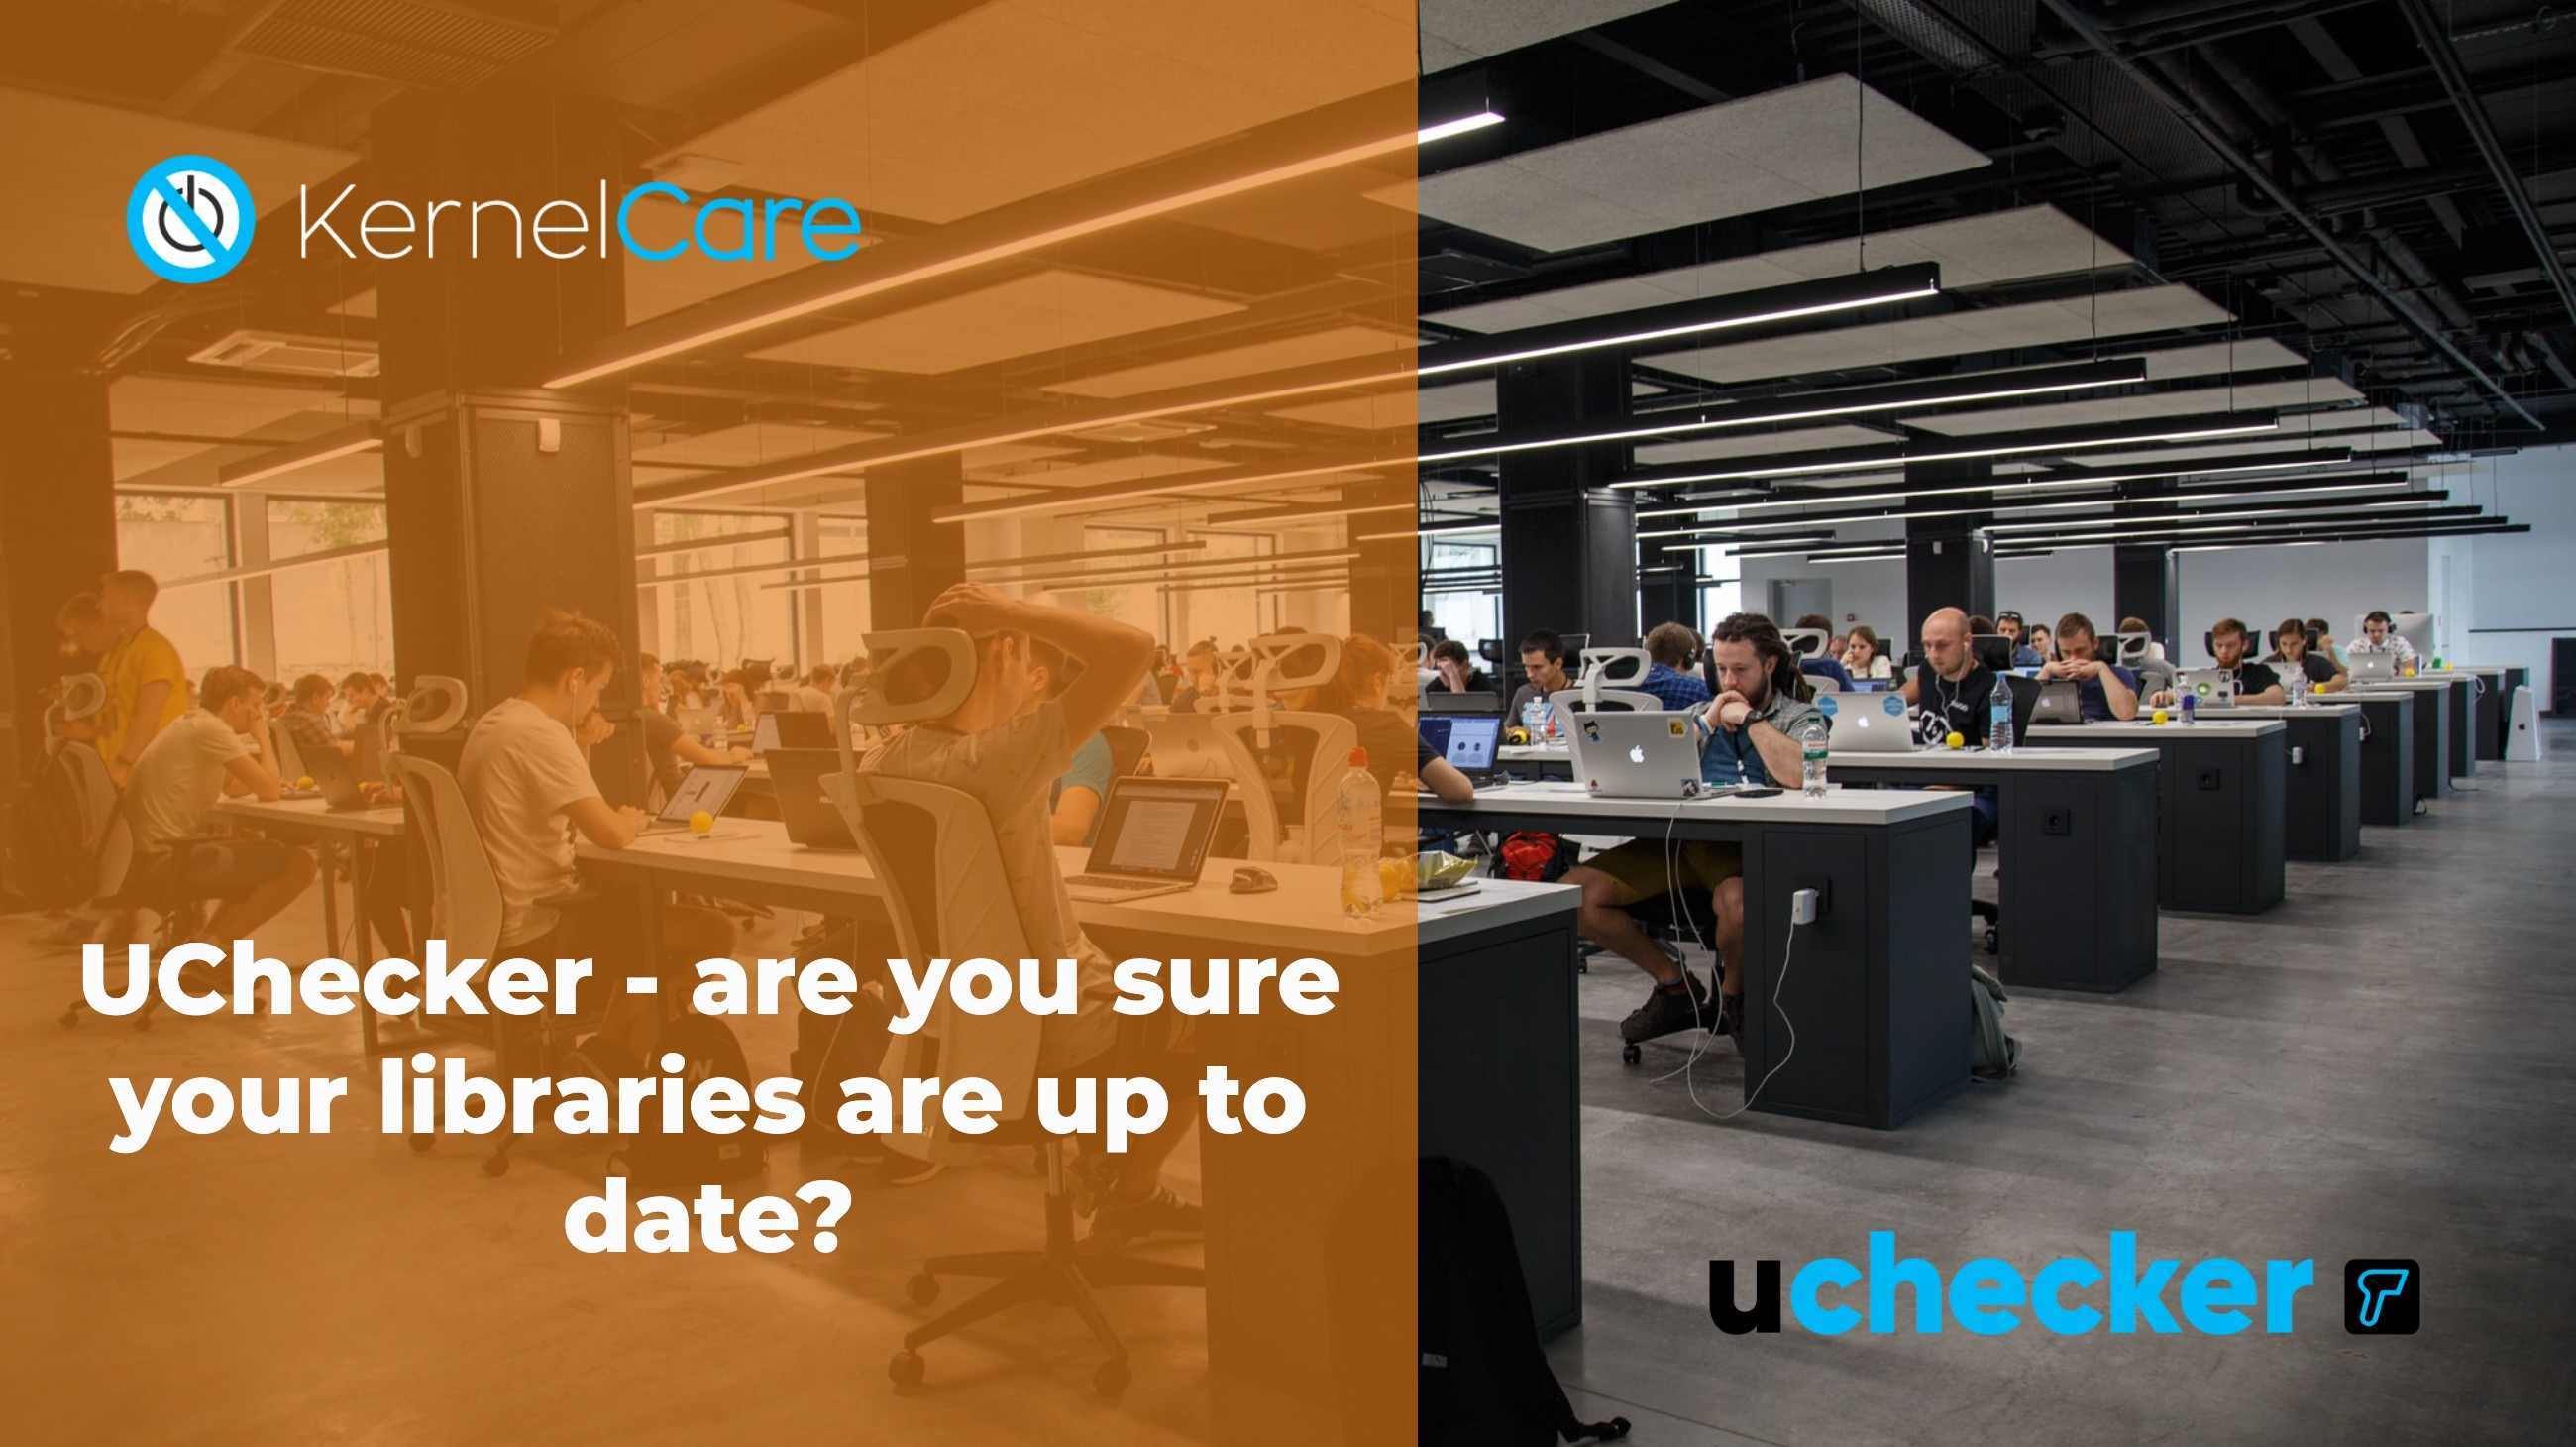 UChecker - are you sure your libraries are up to date?